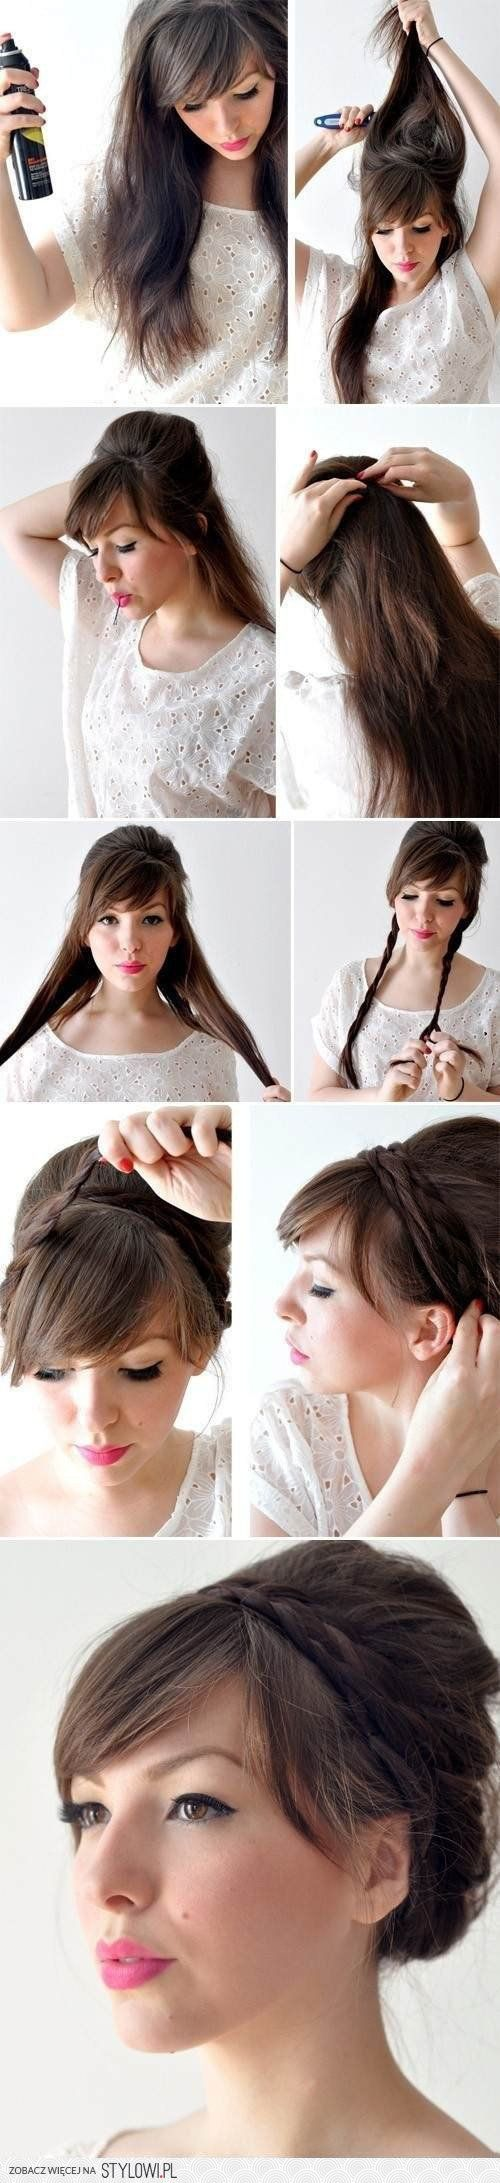 cute beehive with small milkmaid braids